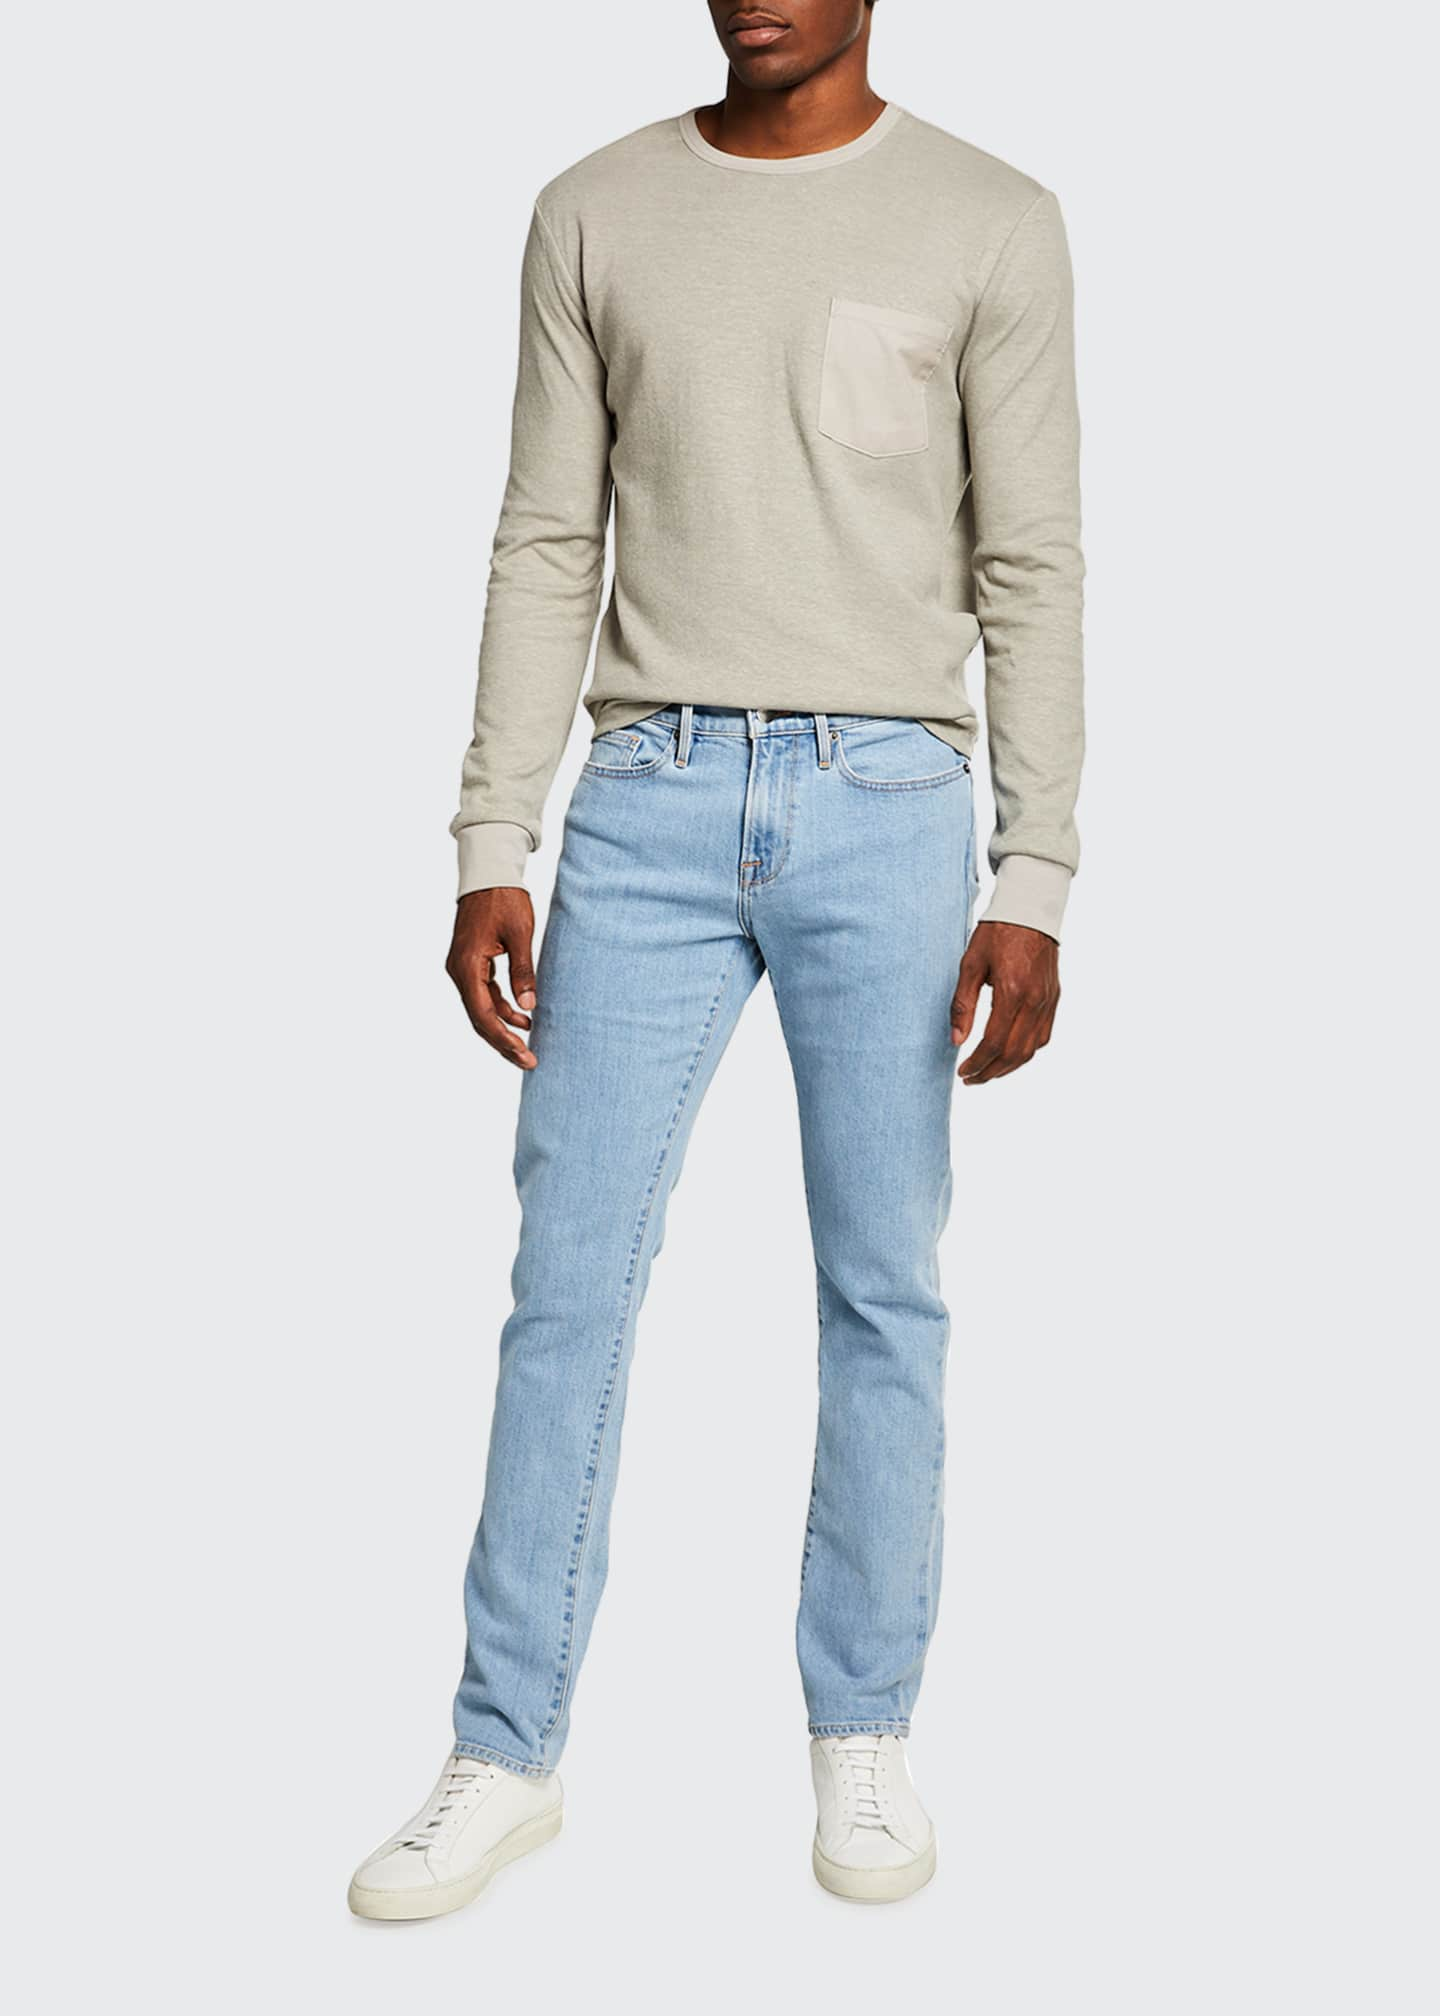 Image 3 of 3: Men's L'Homme Slim Light Wash Denim Jeans